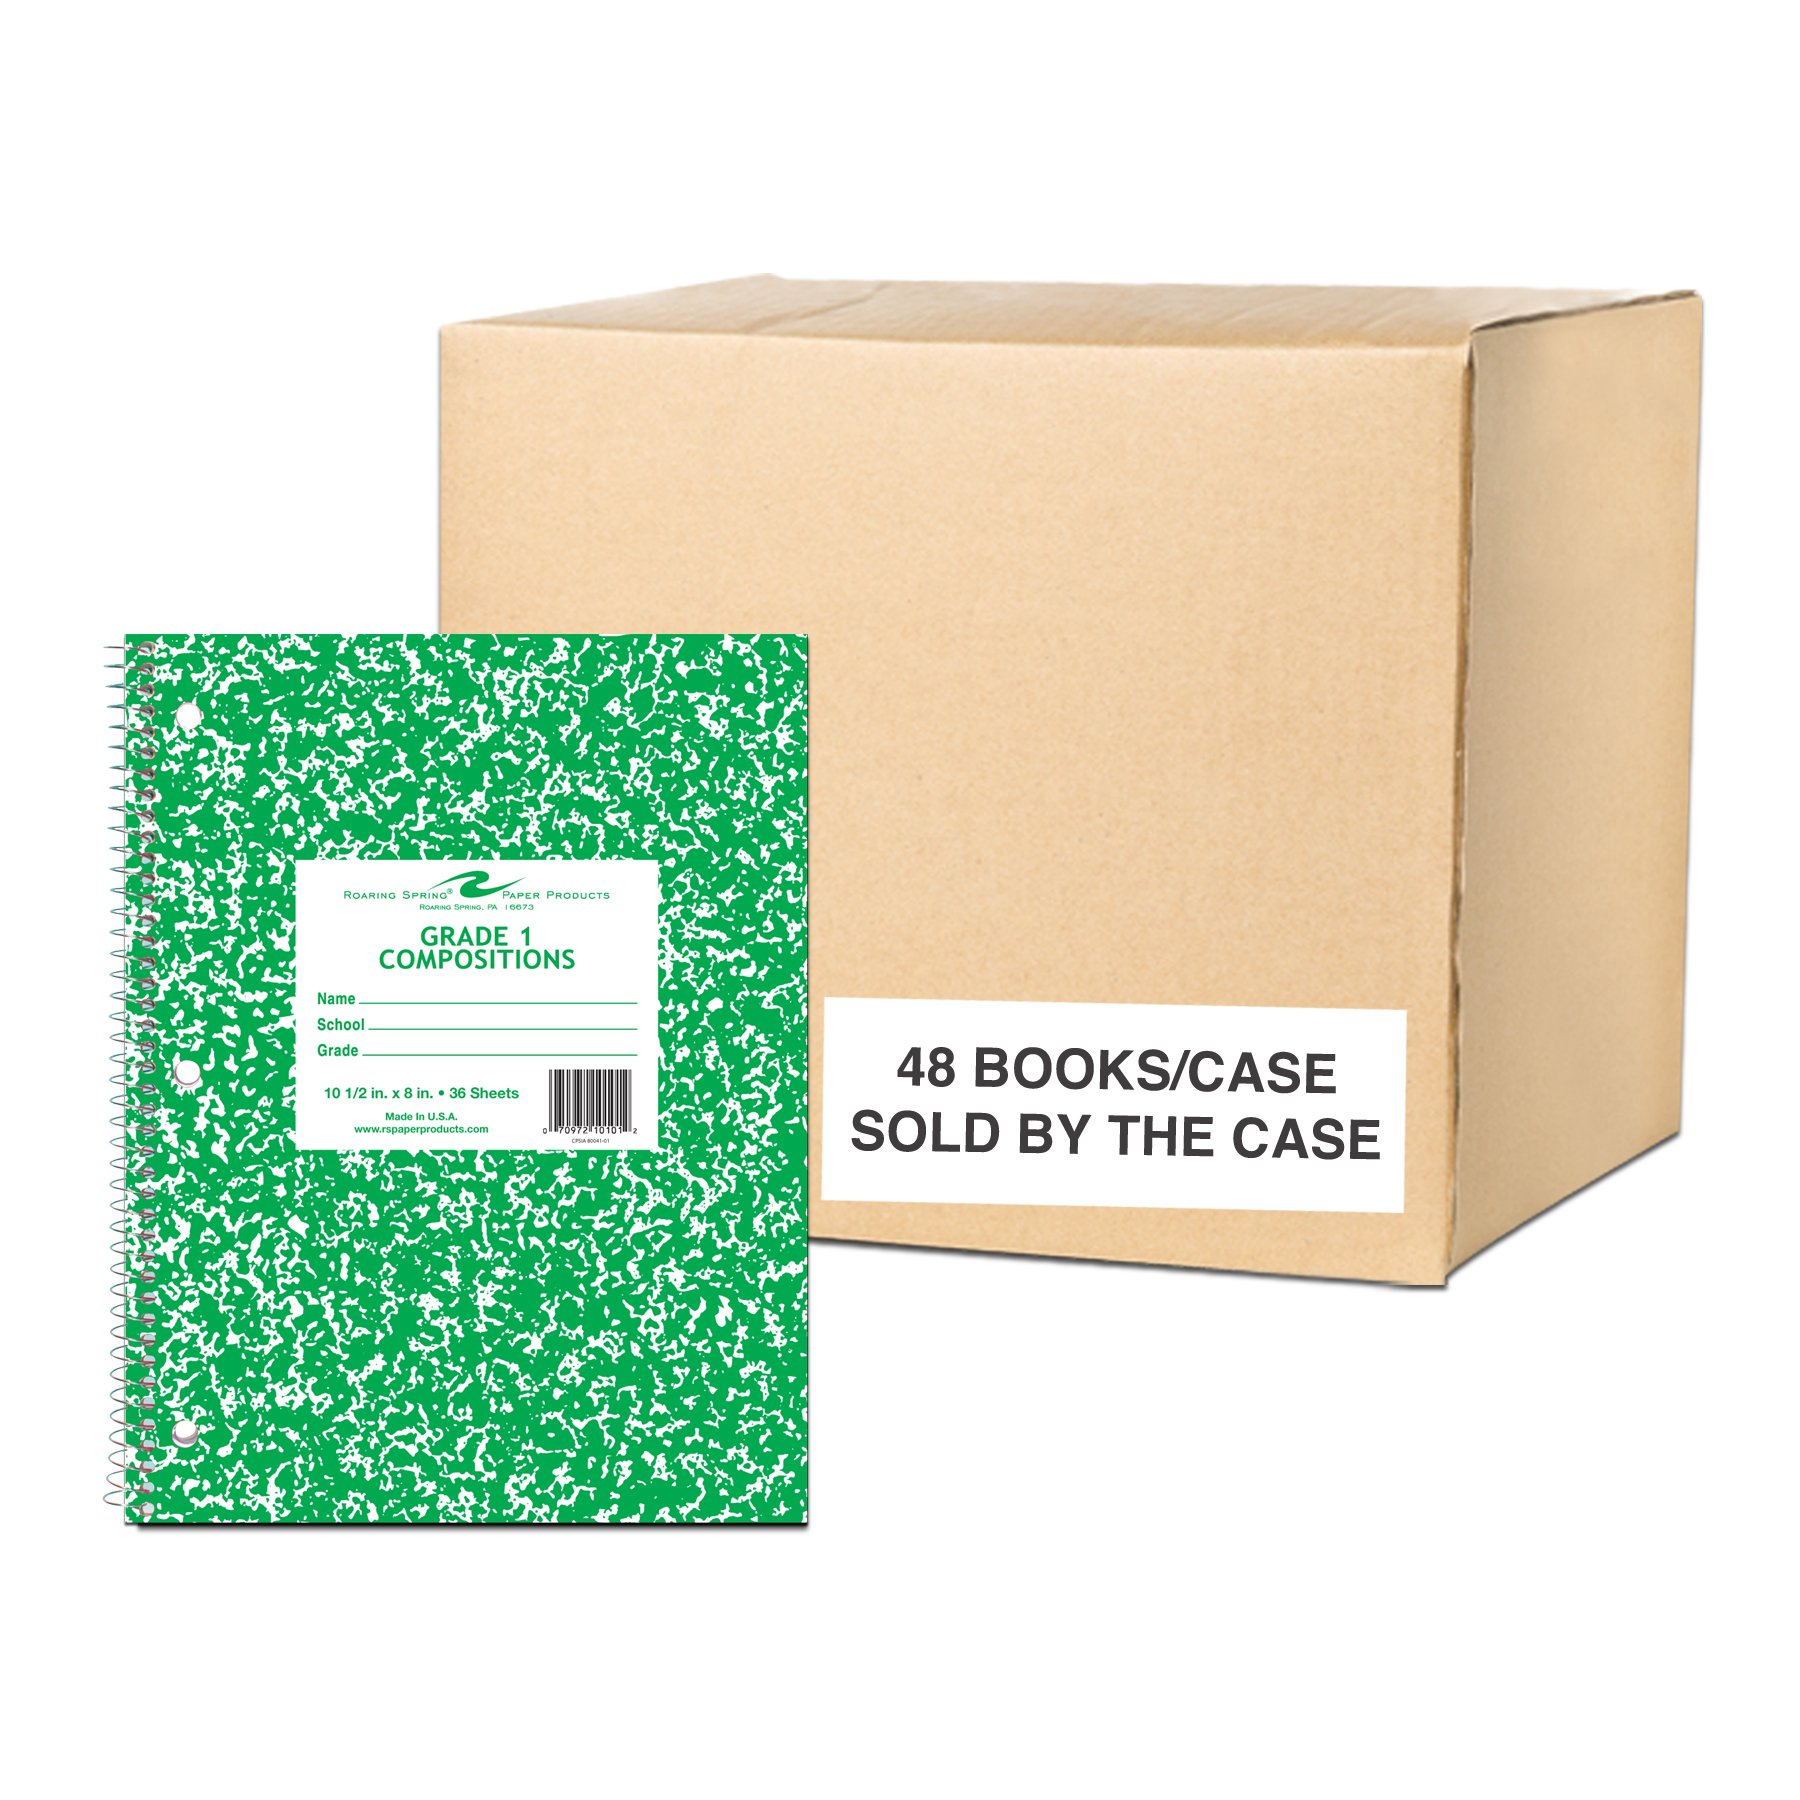 Roaring Spring Paper, Products Case of 48 Grade One Wirebound School Notebooks, 10.5''x8'', 36 sheets/book 15# White tablet Paper, 3-Hole Punched by Roaring Spring